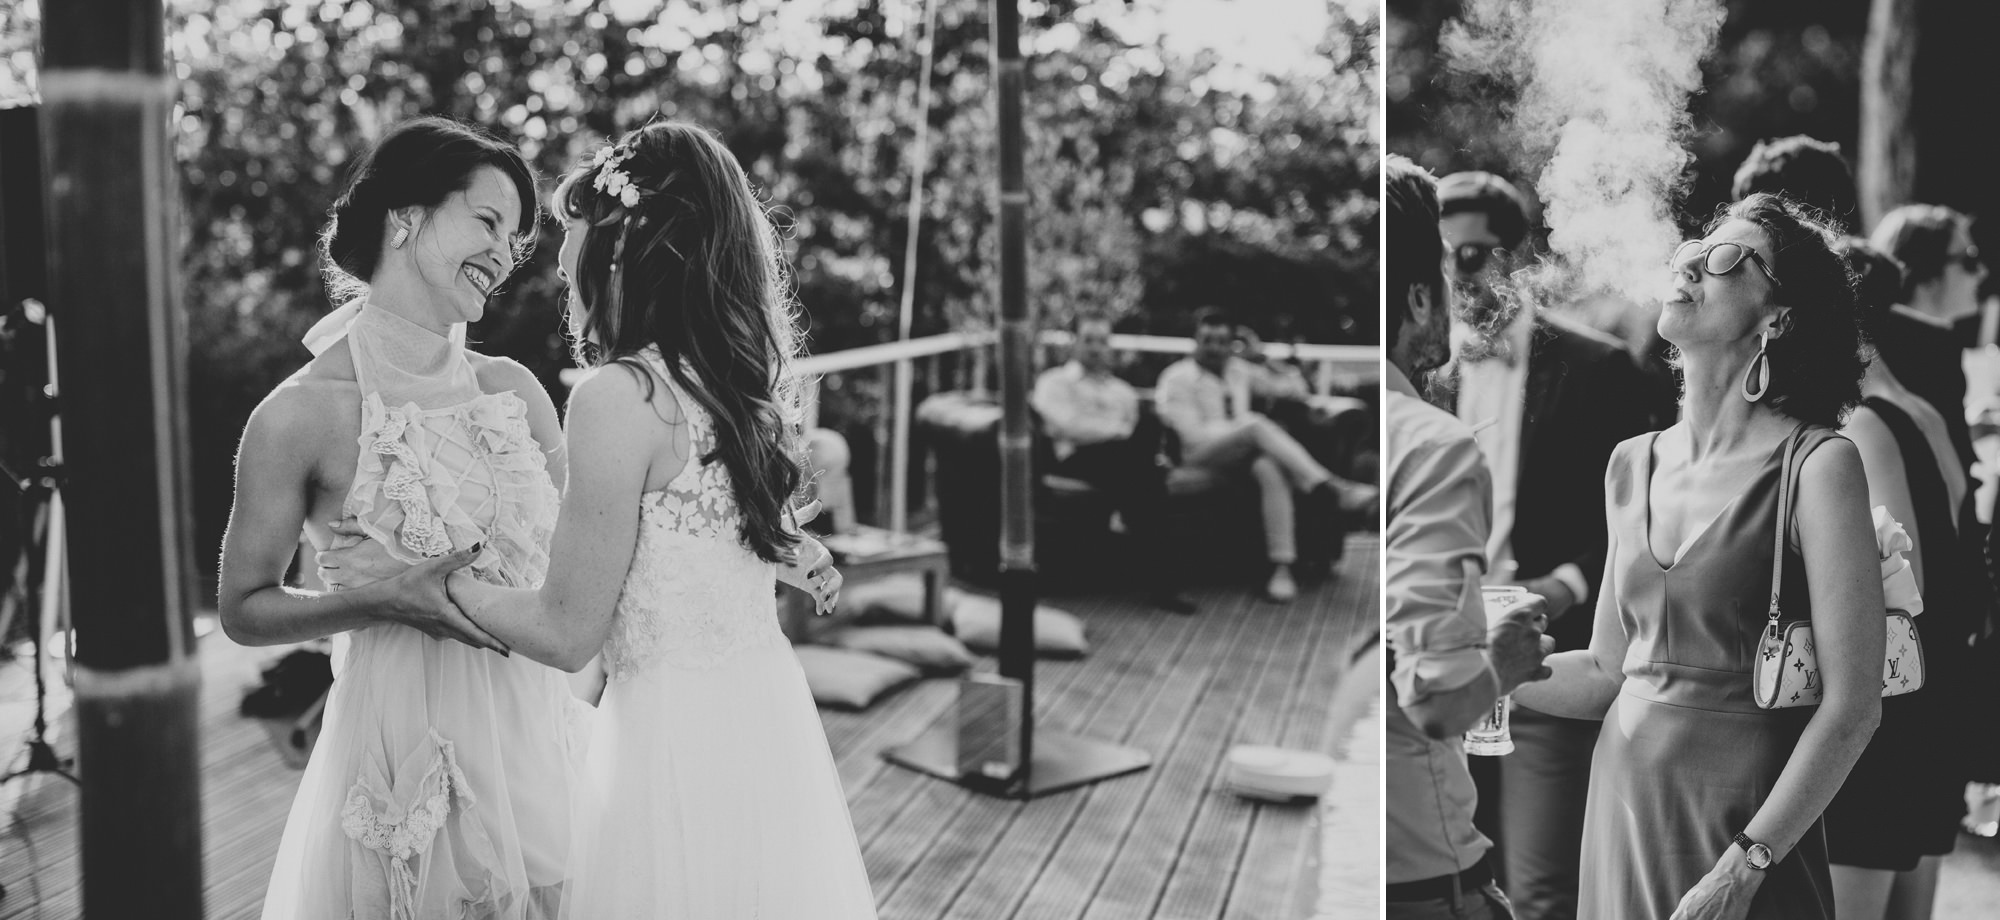 Romantic Wedding on the French Riviera ©Anne-Claire Brun 0043